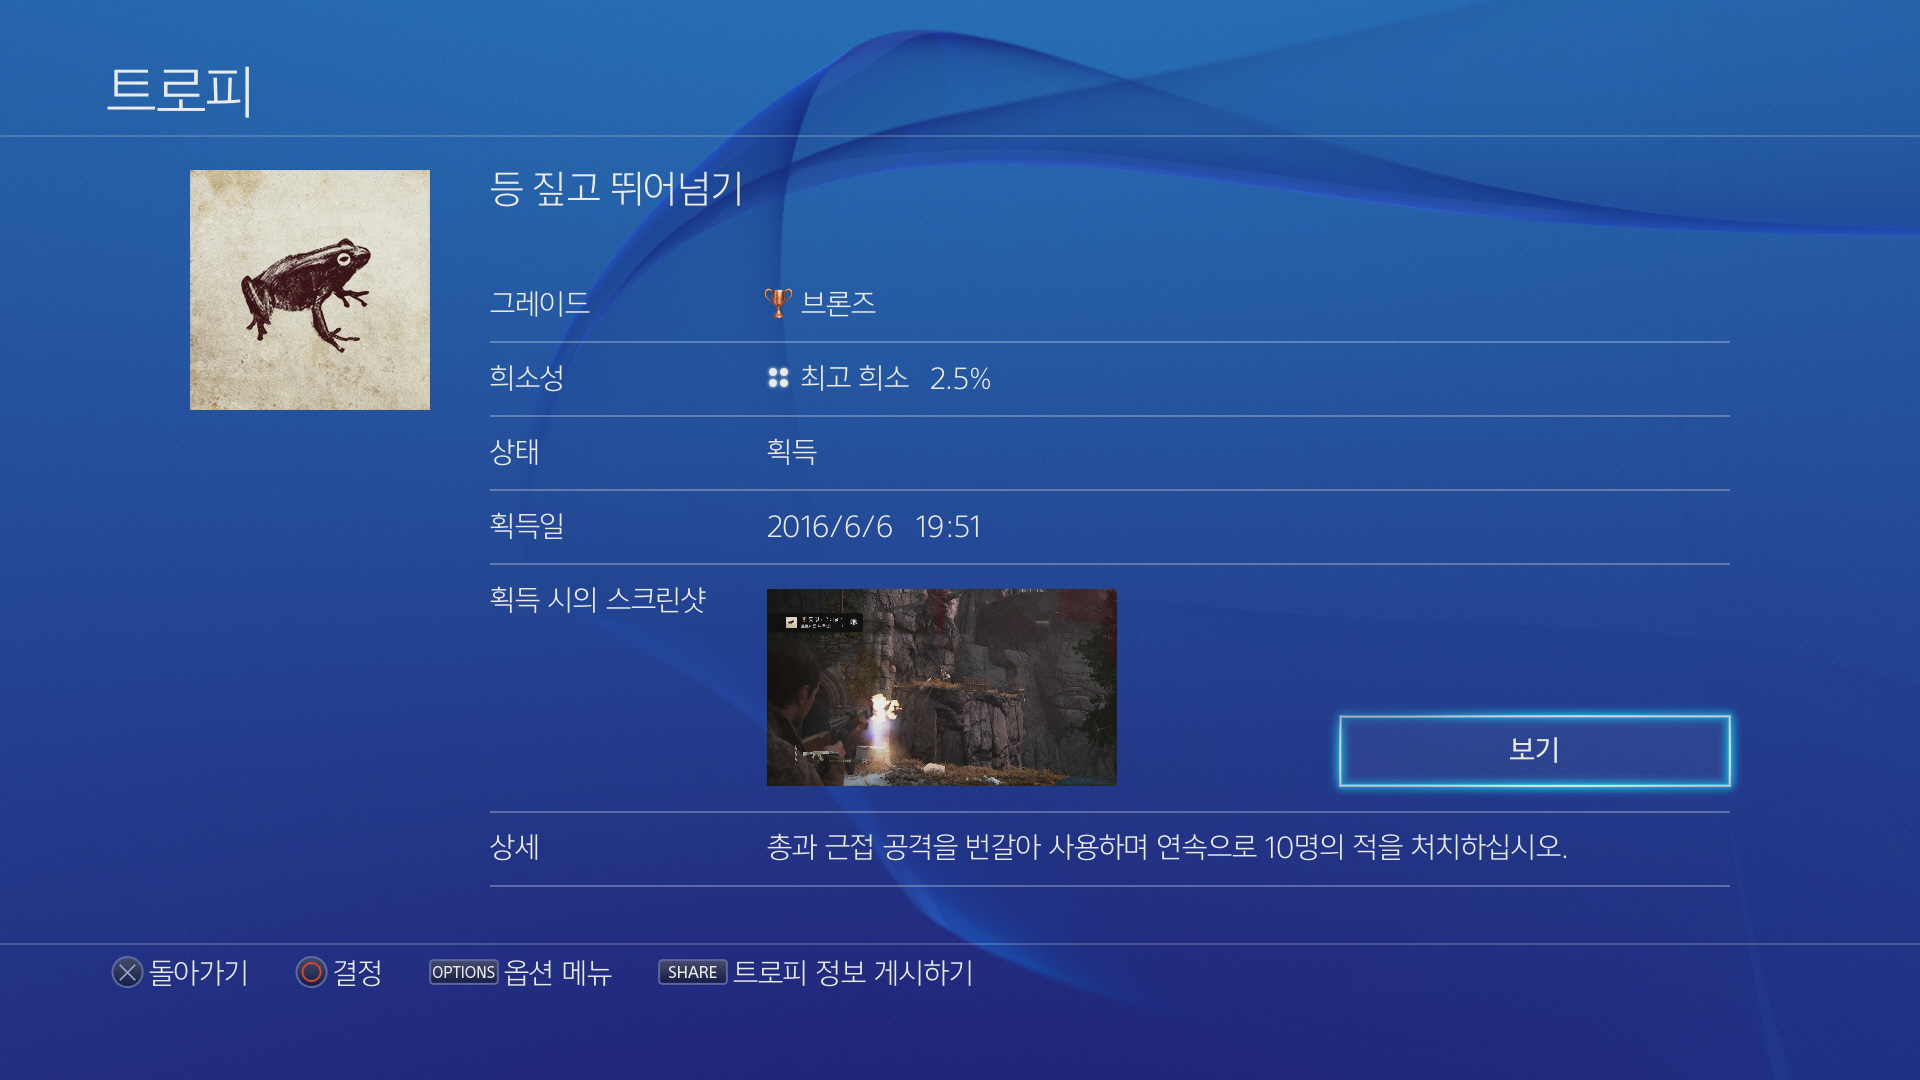 [PS4] 25번째 플래티넘 - Uncharted 4